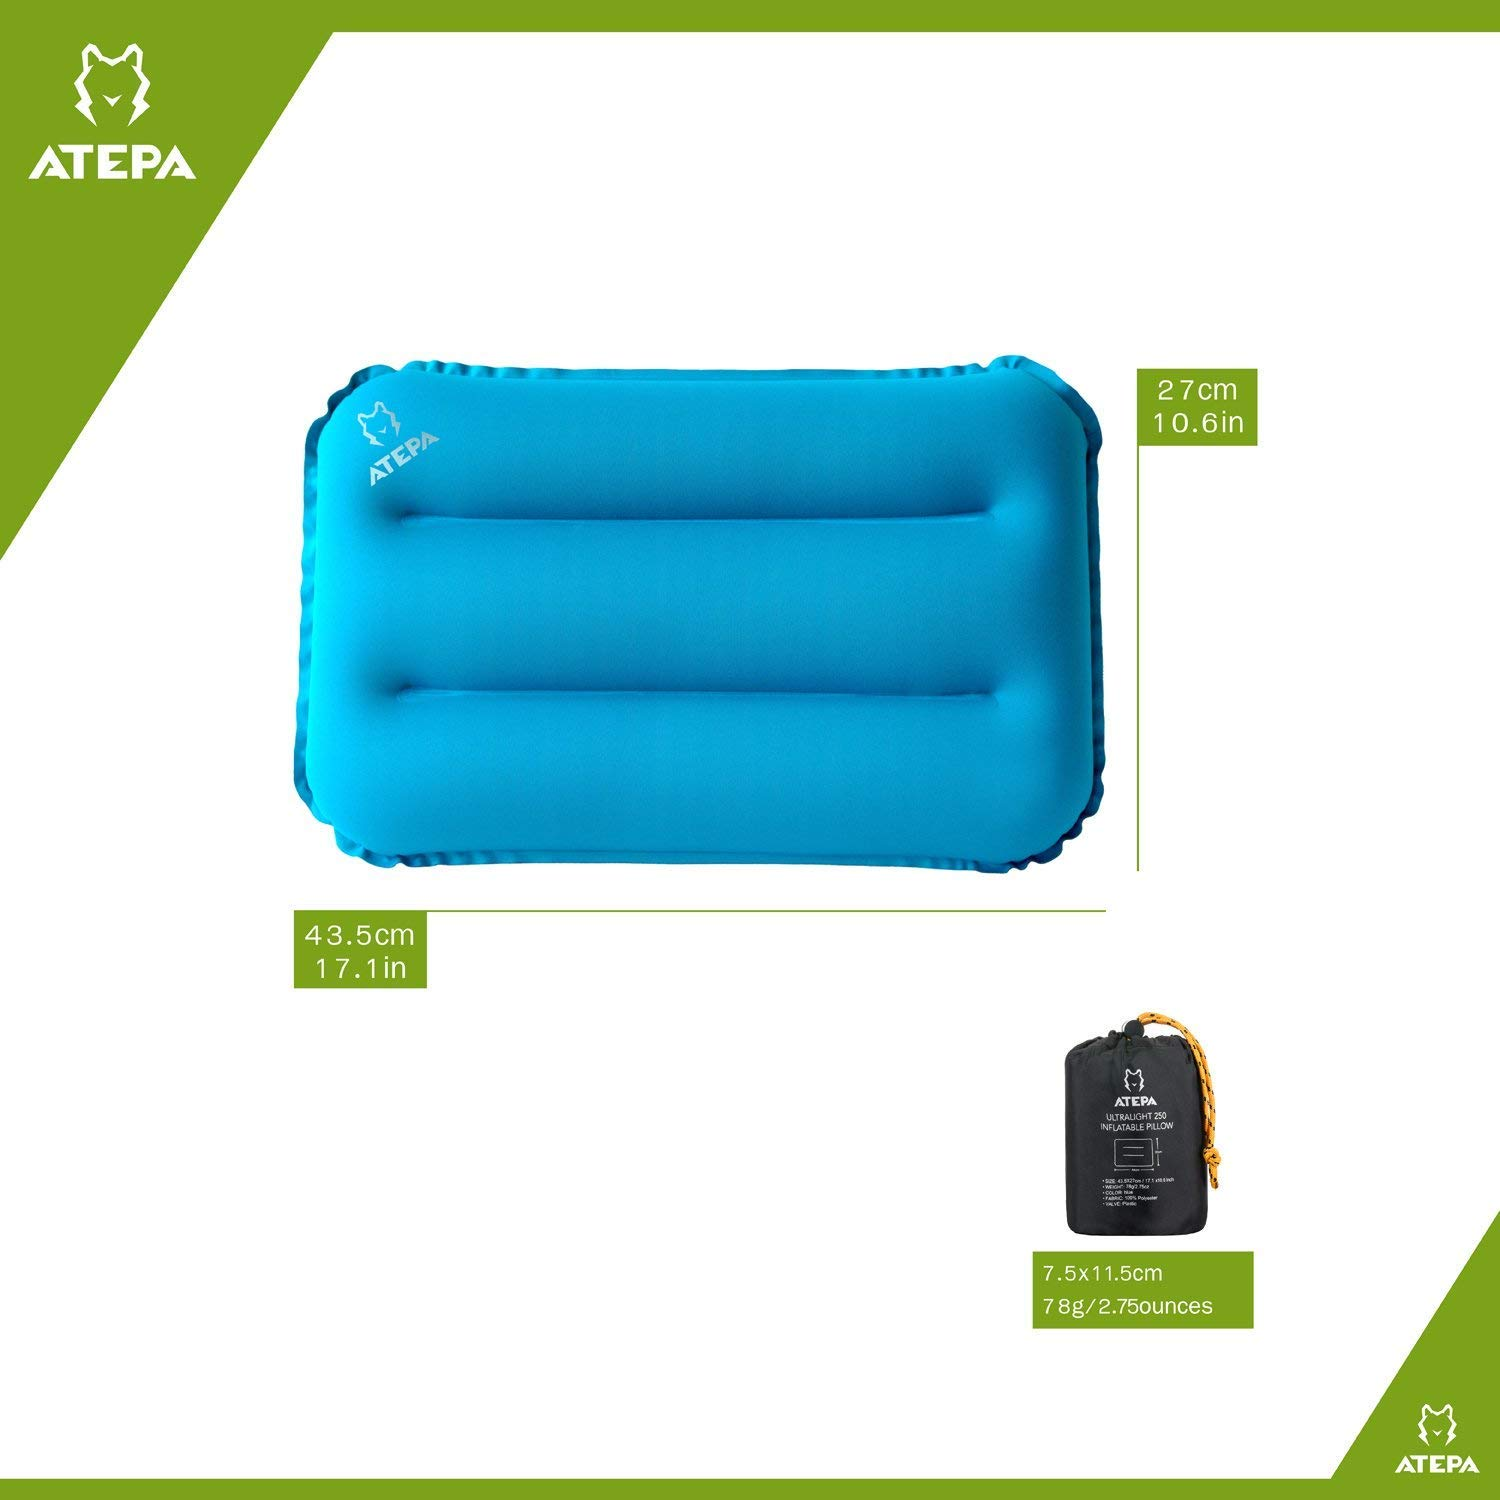 ATEPA Ultra Light 250 Inflatable Pillow with Patent Plastic Valve and Repair Cloth for Camping, Office, Home, Traveling